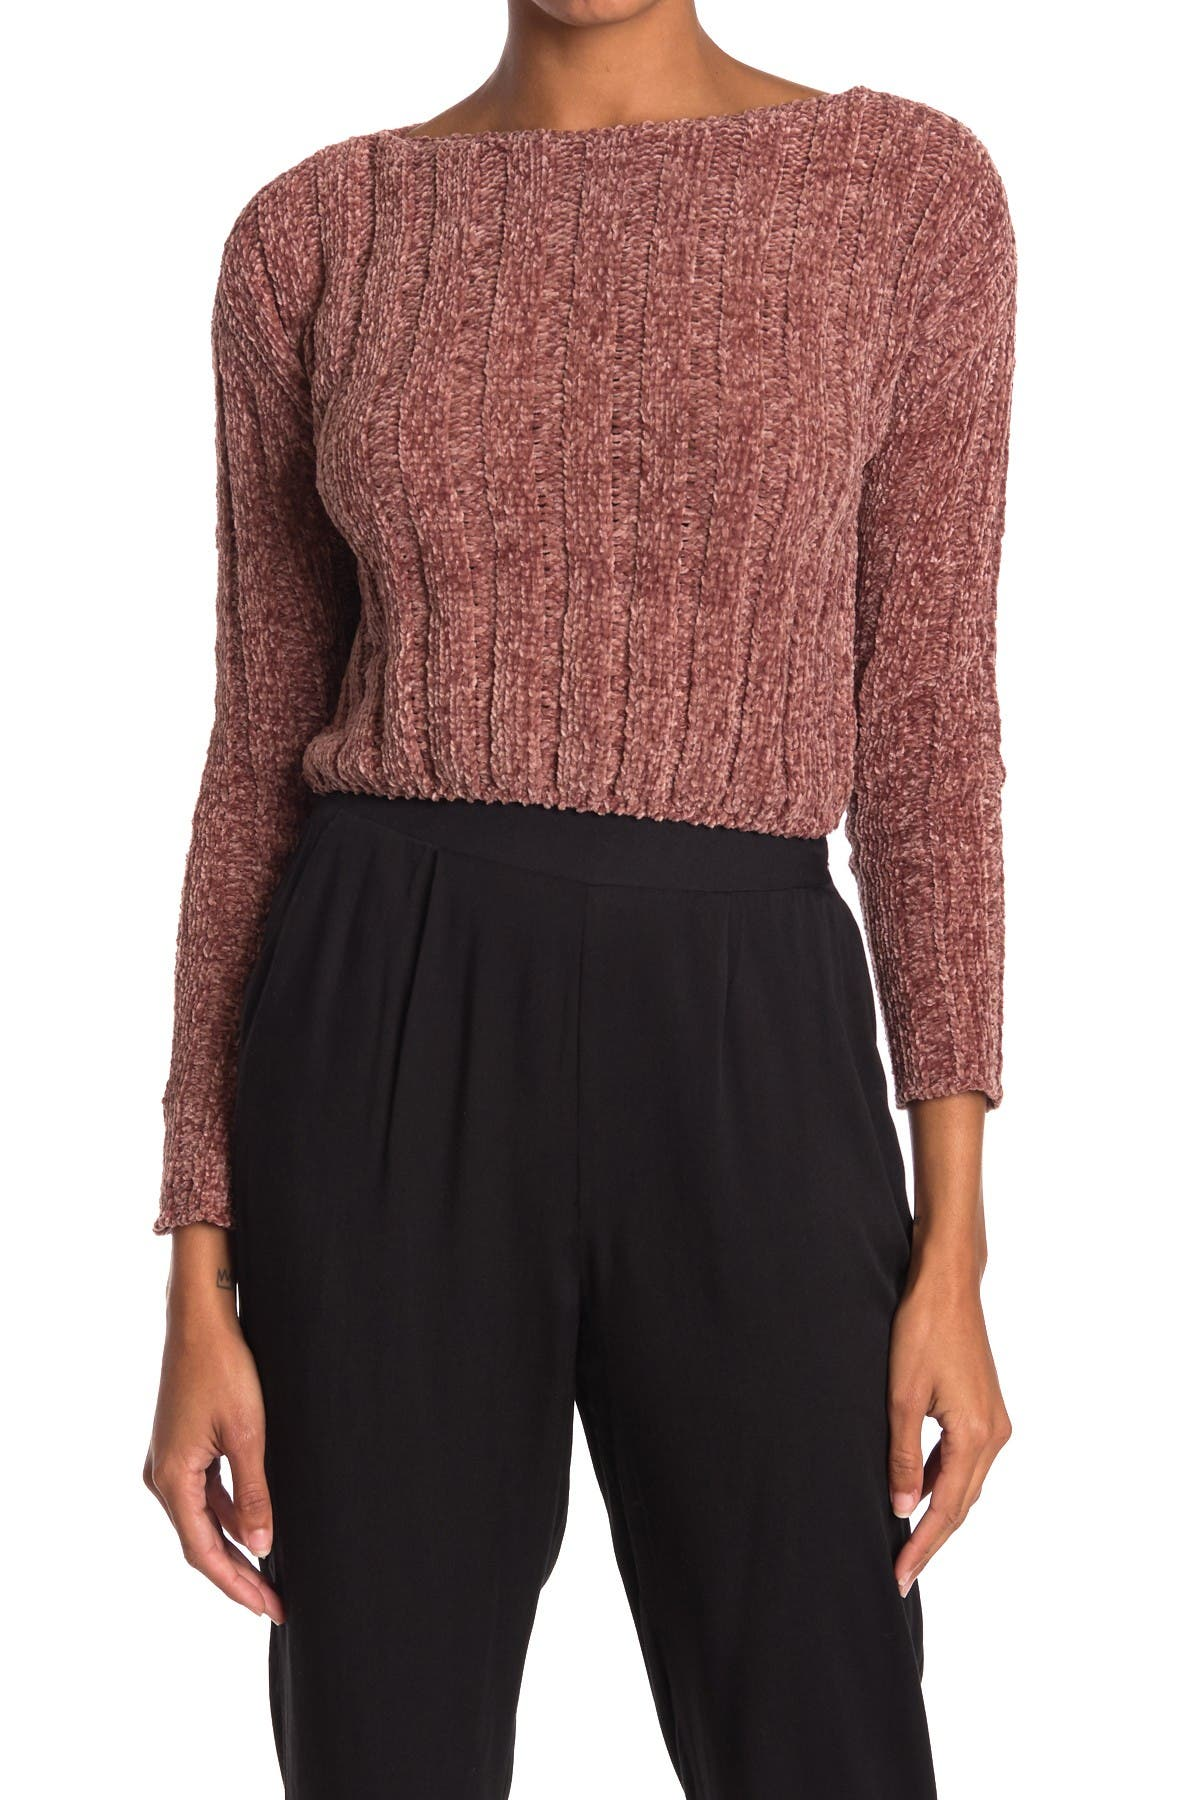 Image of HYFVE Chenille Boxy Ribbed Cropped Sweater